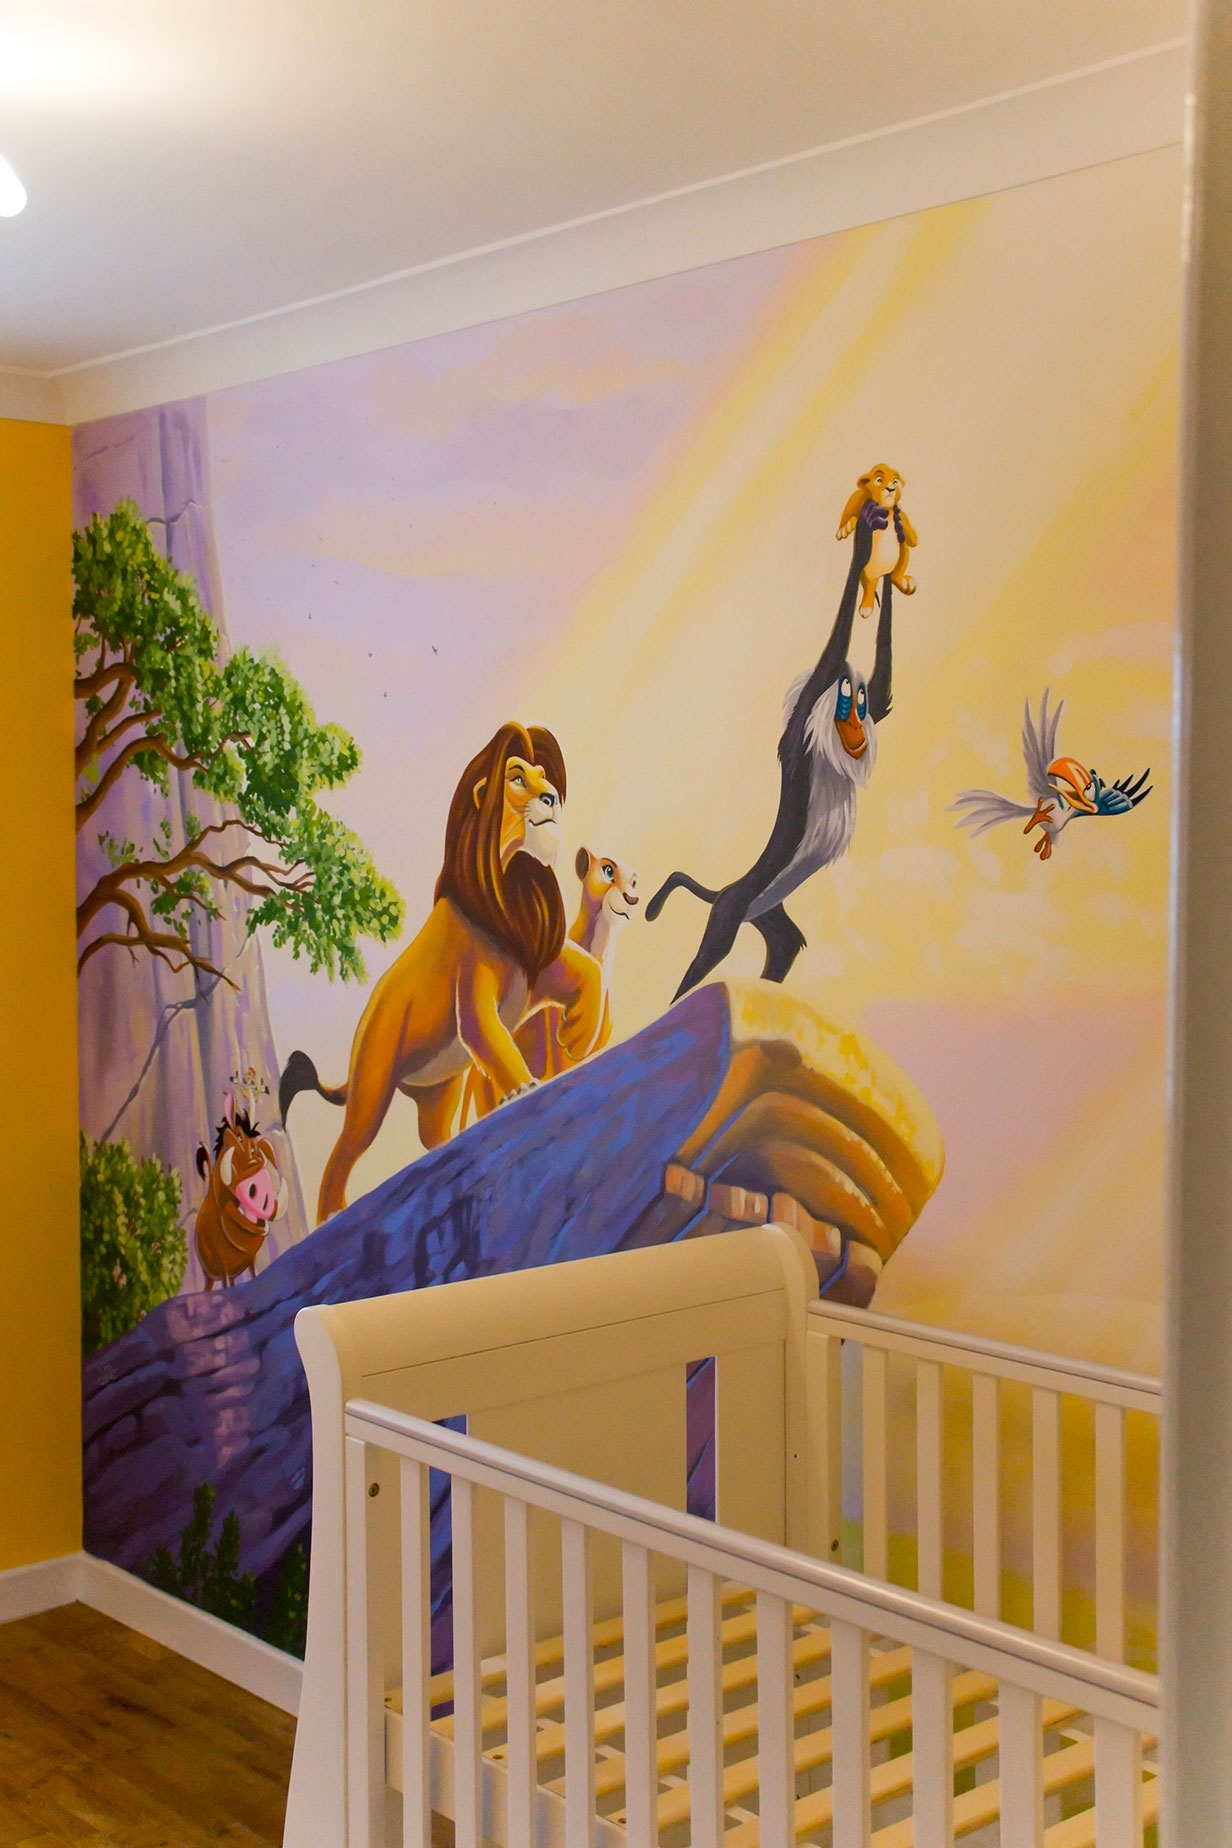 2017 40 Lion King Wall Art, 301 Moved Permanently – Swinkimorskie With Regard To Lion King Wall Art (View 1 of 20)